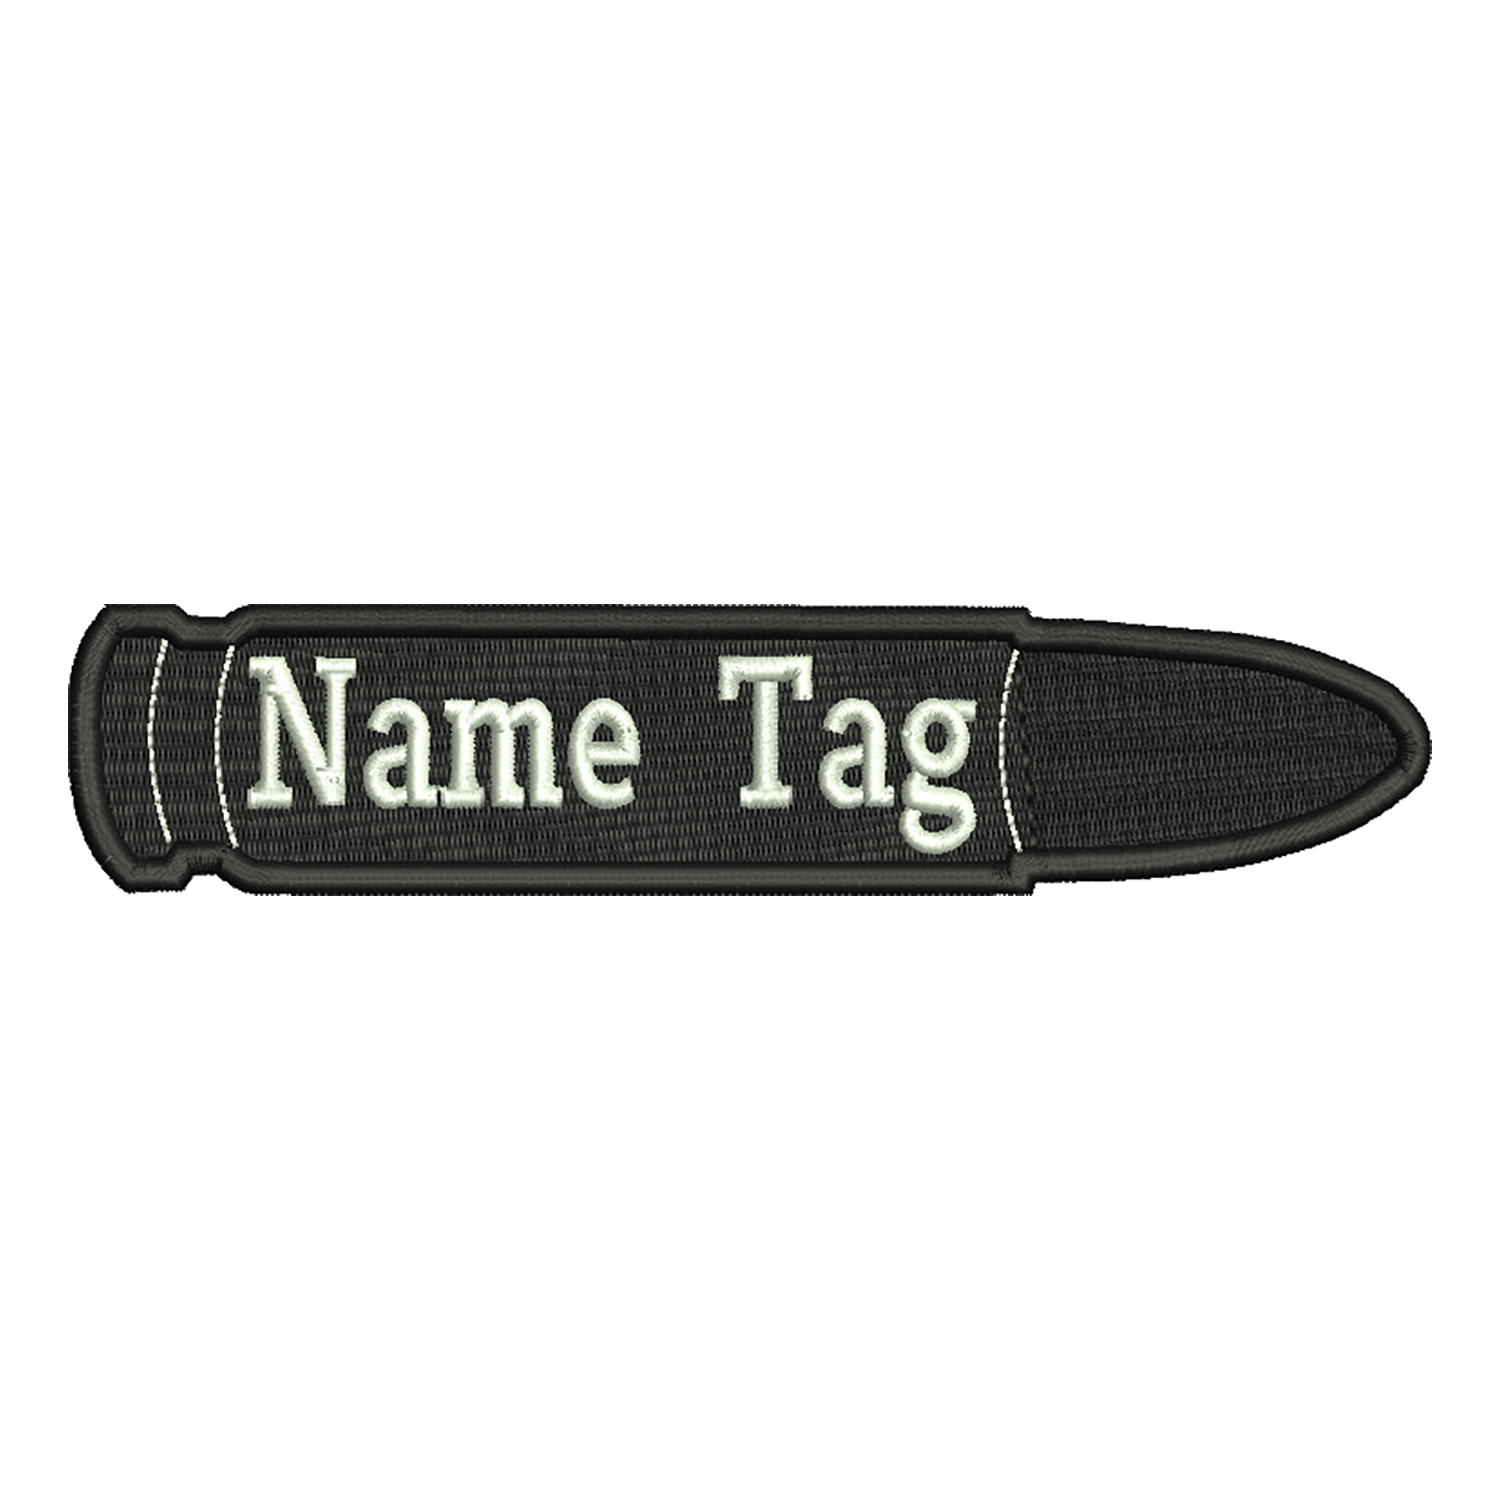 Bullet Custom Name Tag Biker Vest Patch